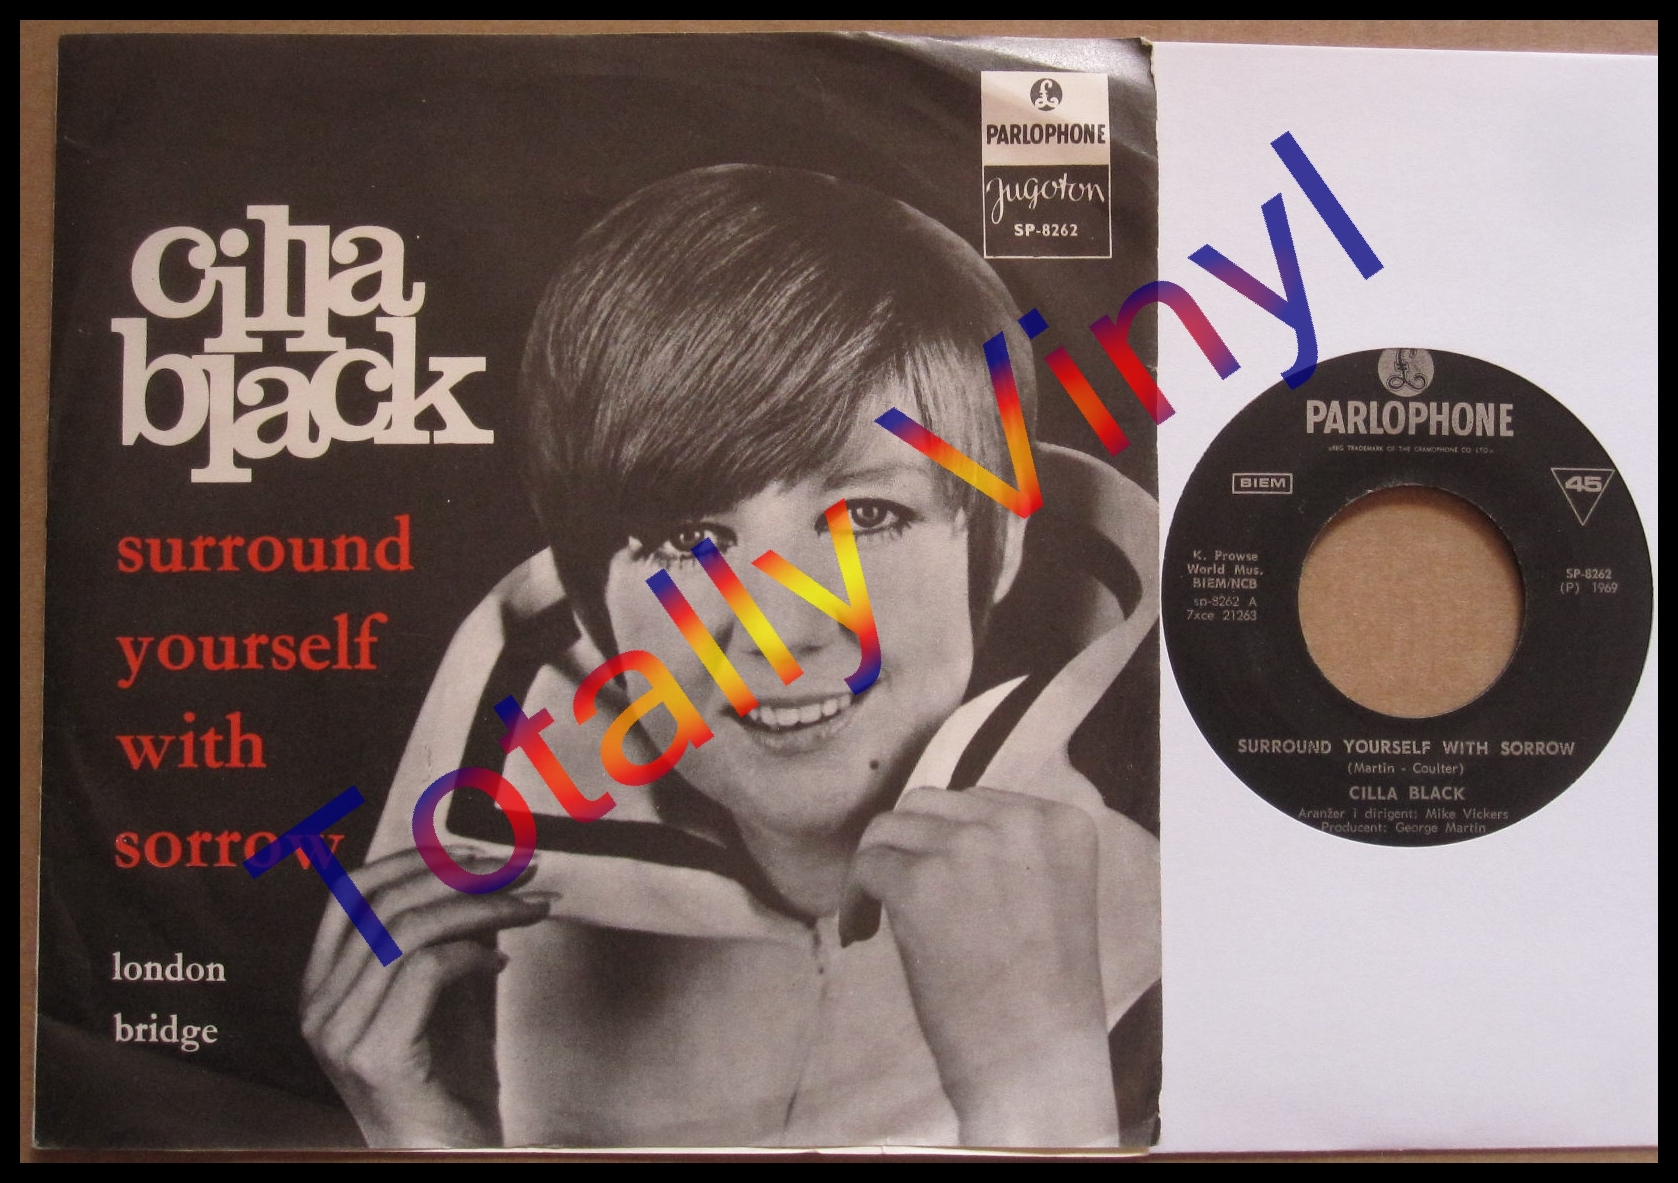 Totally Vinyl Records Black Cilla Surround Yourself